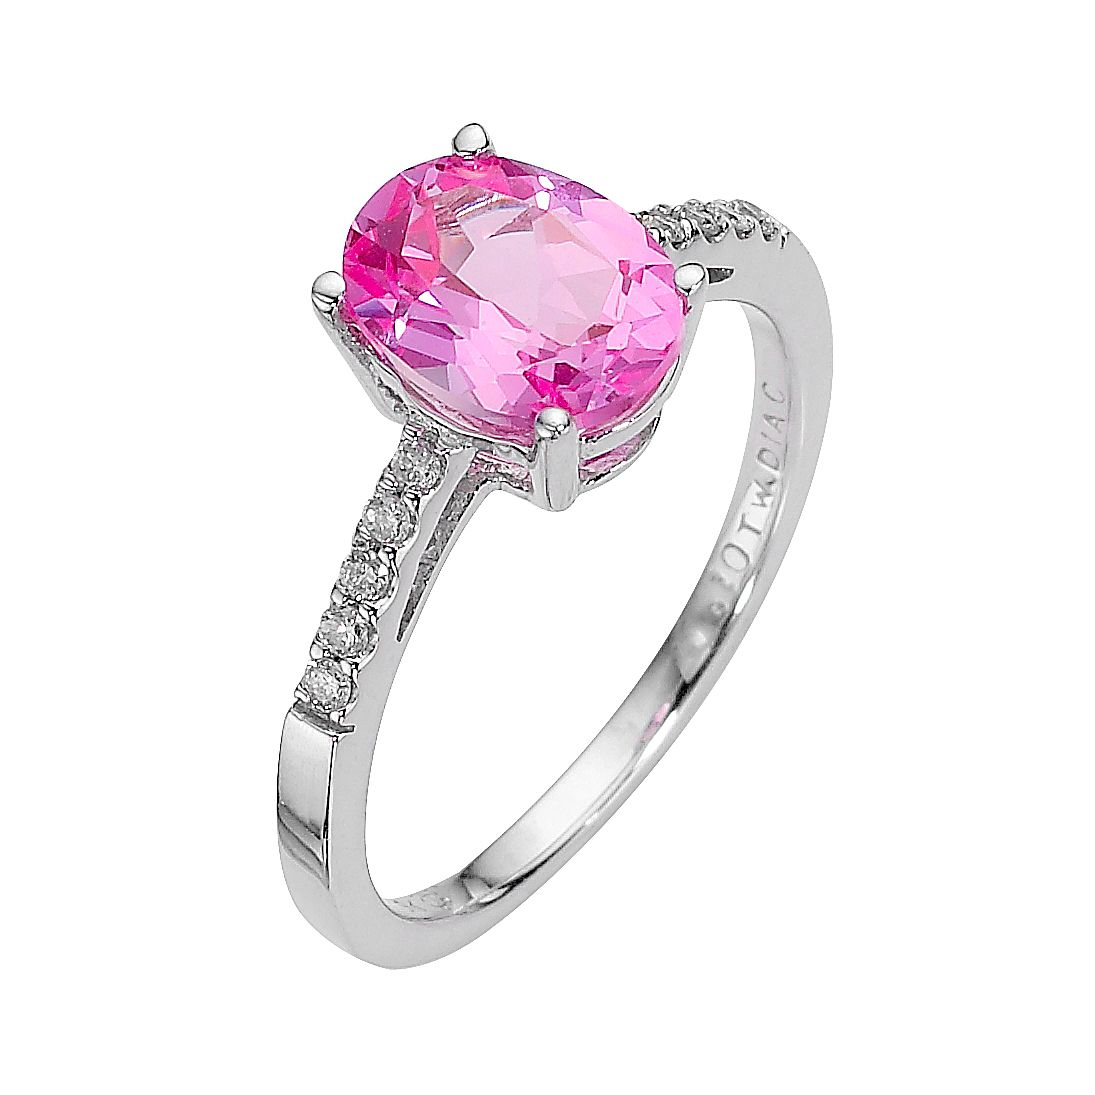 m ed diamond carat pink sapphire in platinum jewelry solestepink ring rings soleste tiffany with and a